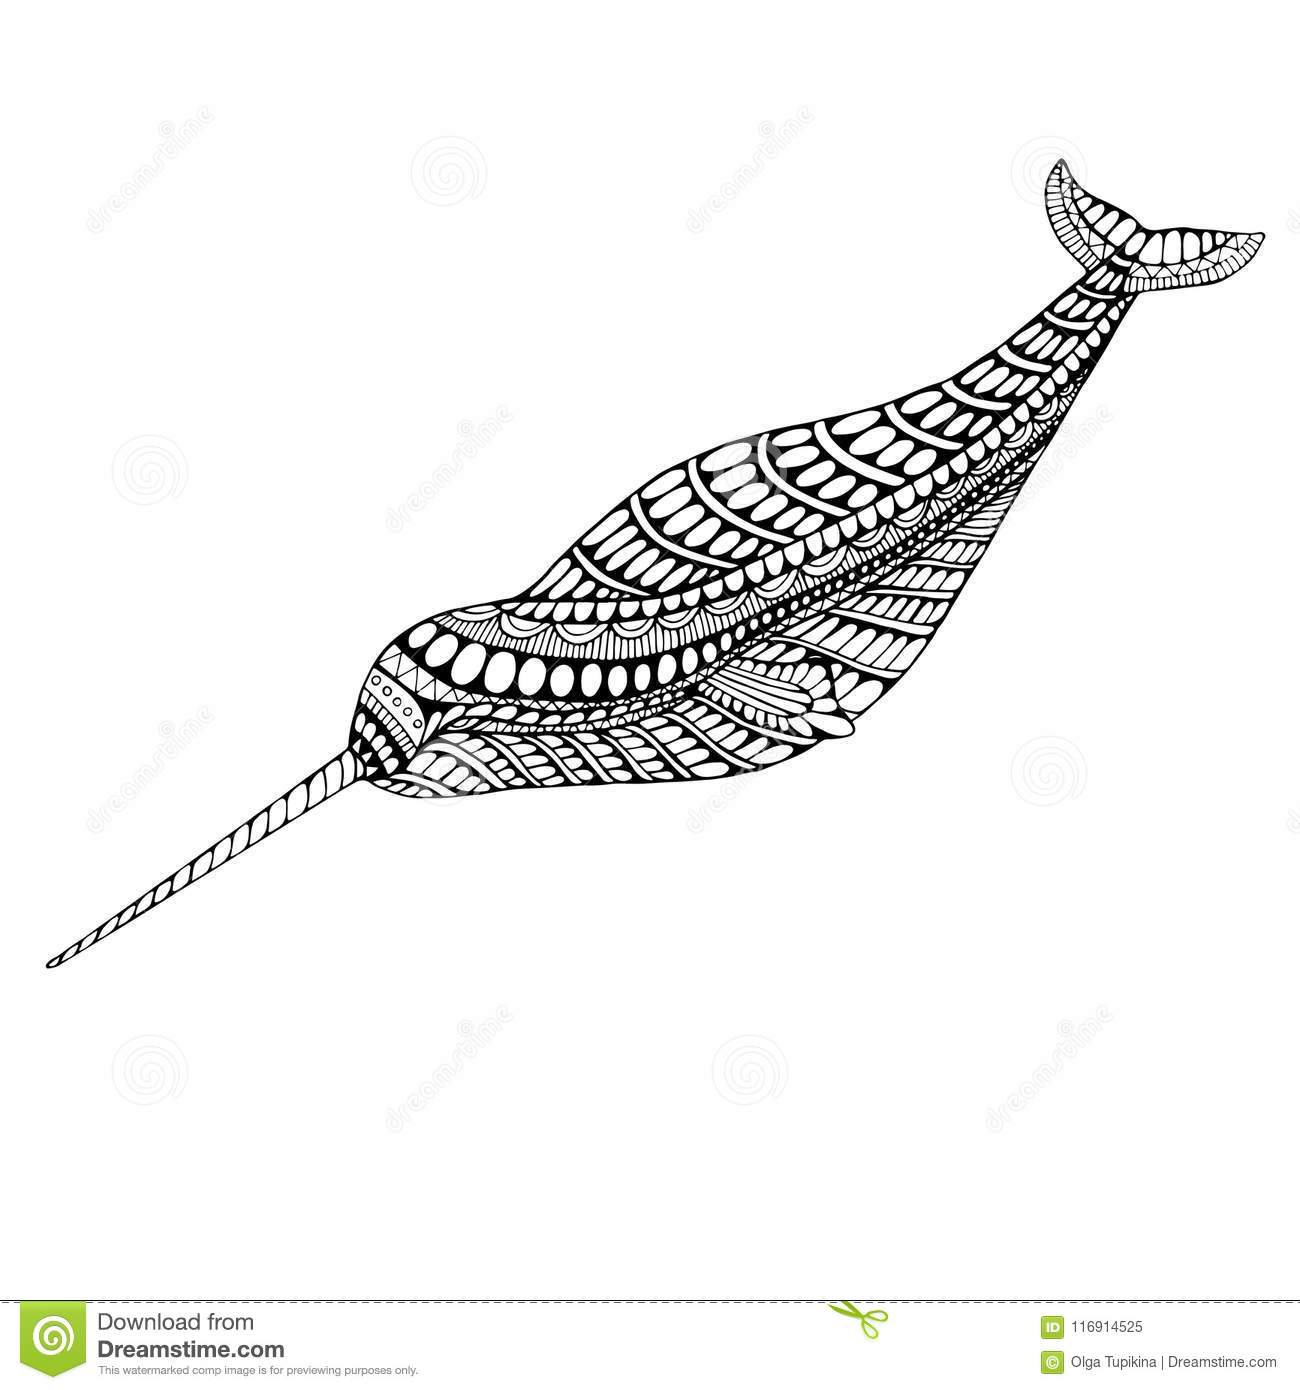 Coloring page narwhal stock vector. Illustration of background ...